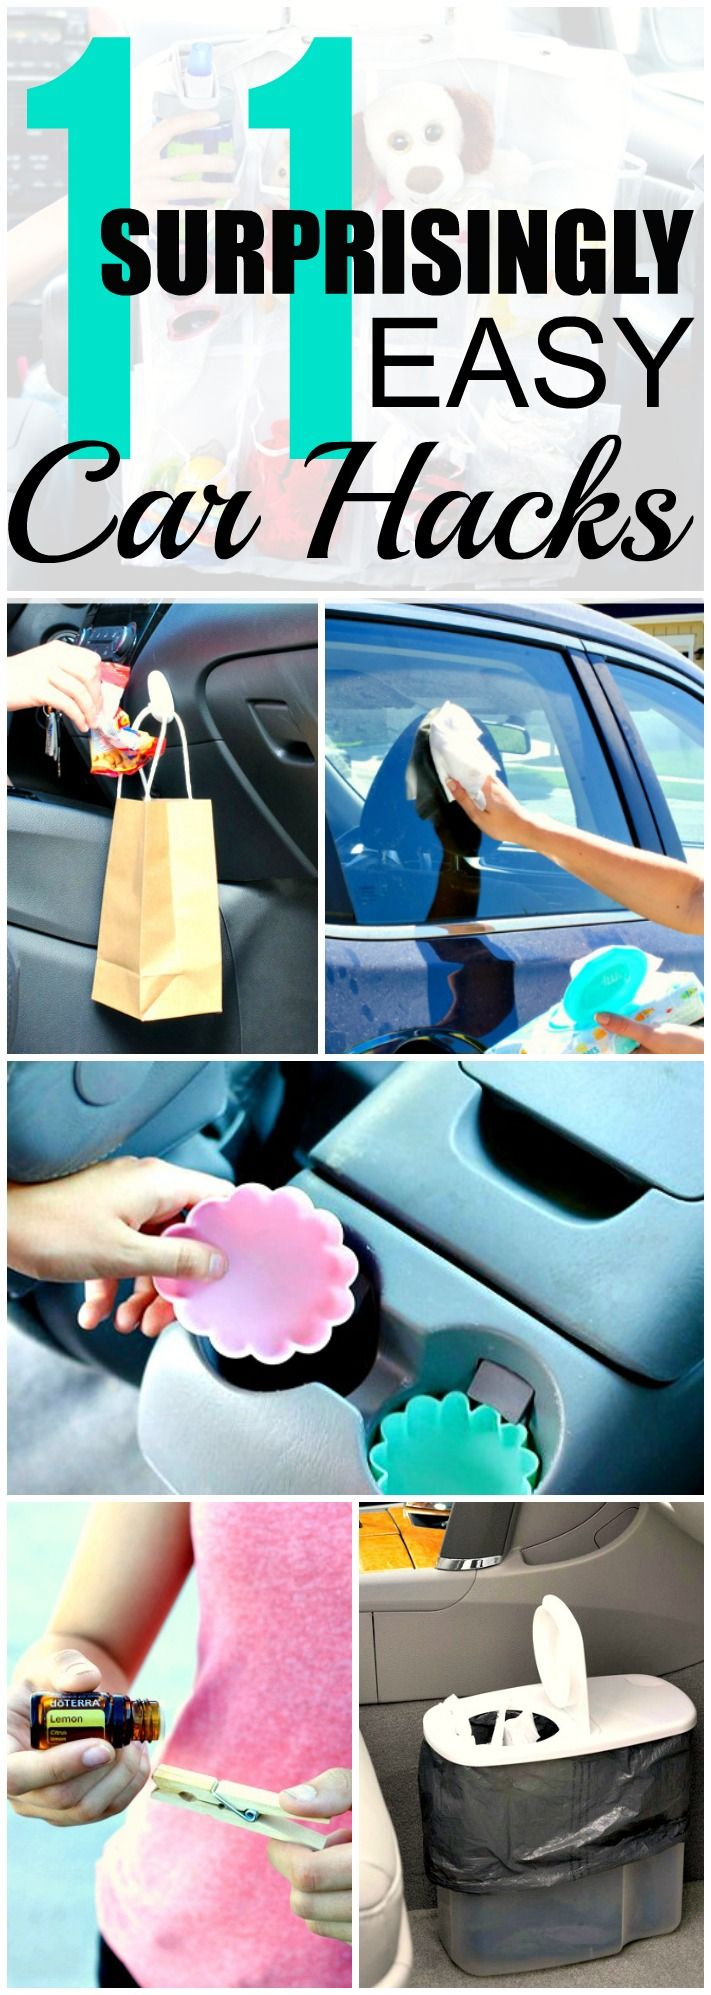 10 Clever Car Hacks That\'ll Make Life Easier | Life changing ...